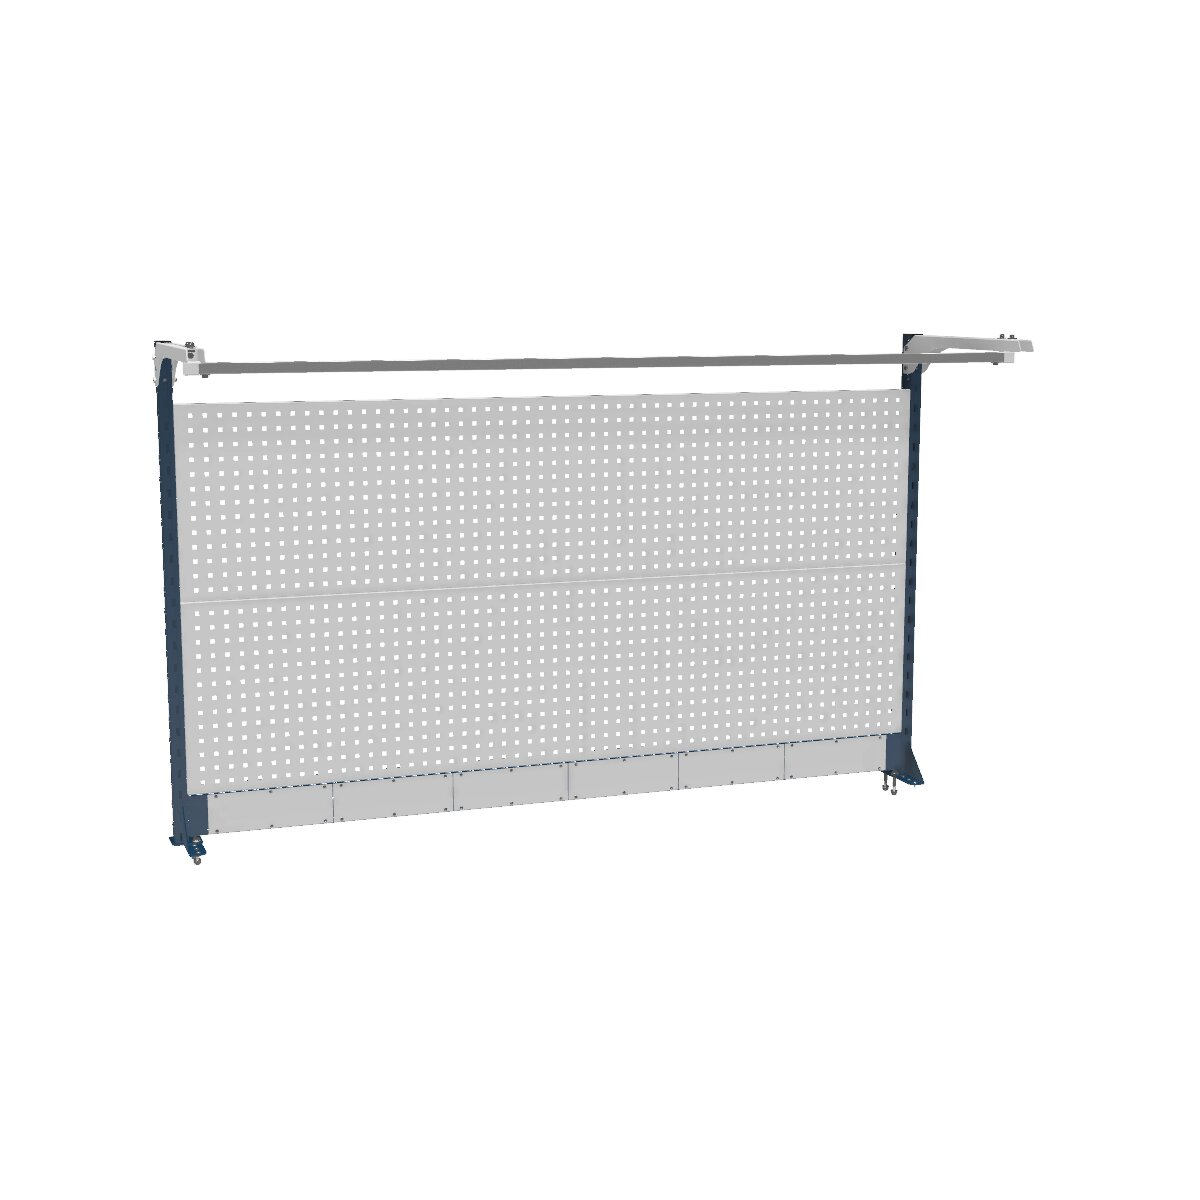 DiKom Perforated Panel VS-200-E6